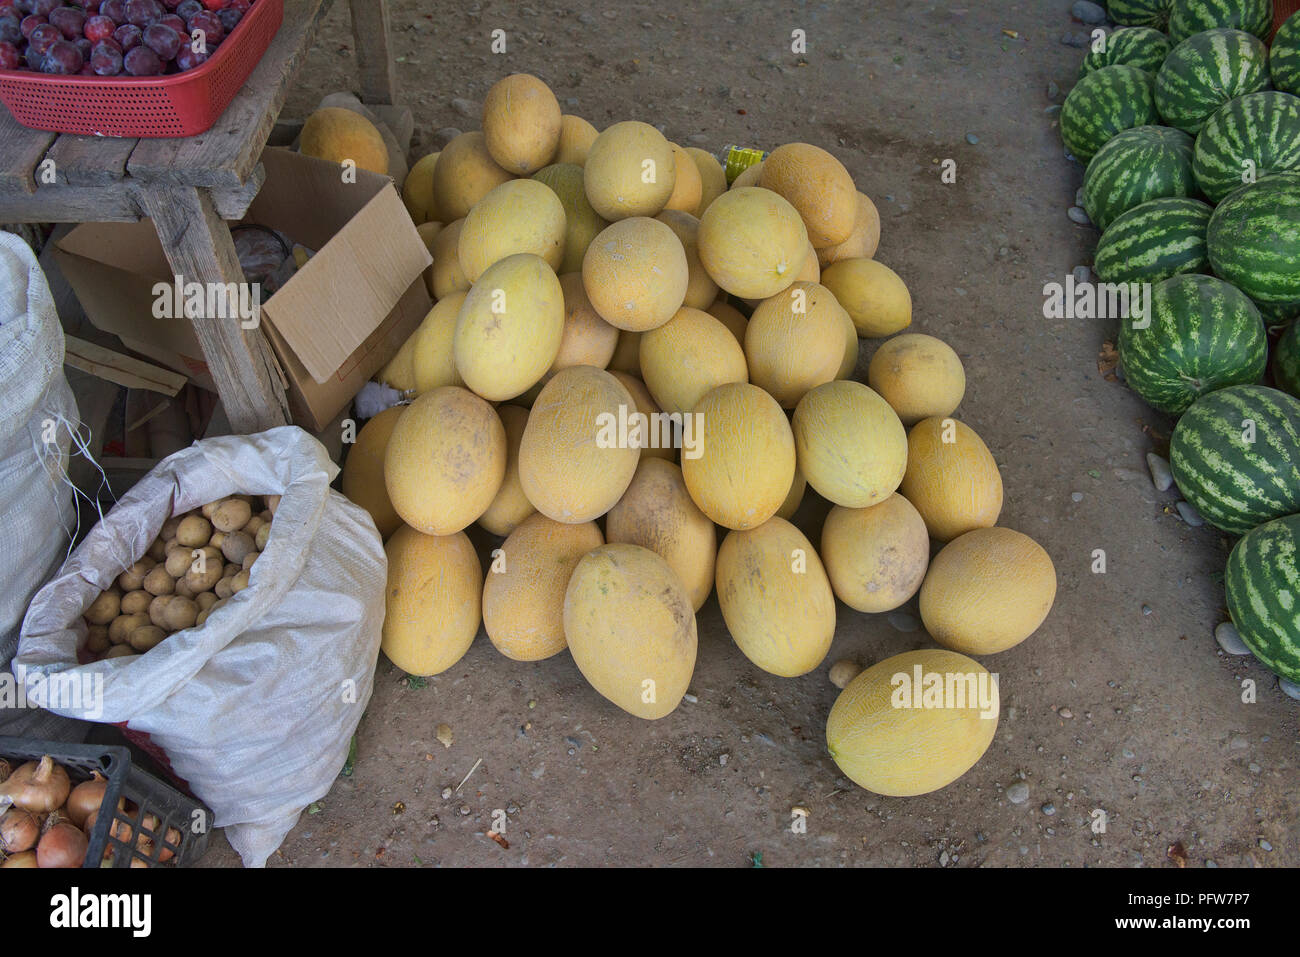 Melons for sale by the roadside, Osh, Kyrgyzstan - Stock Image